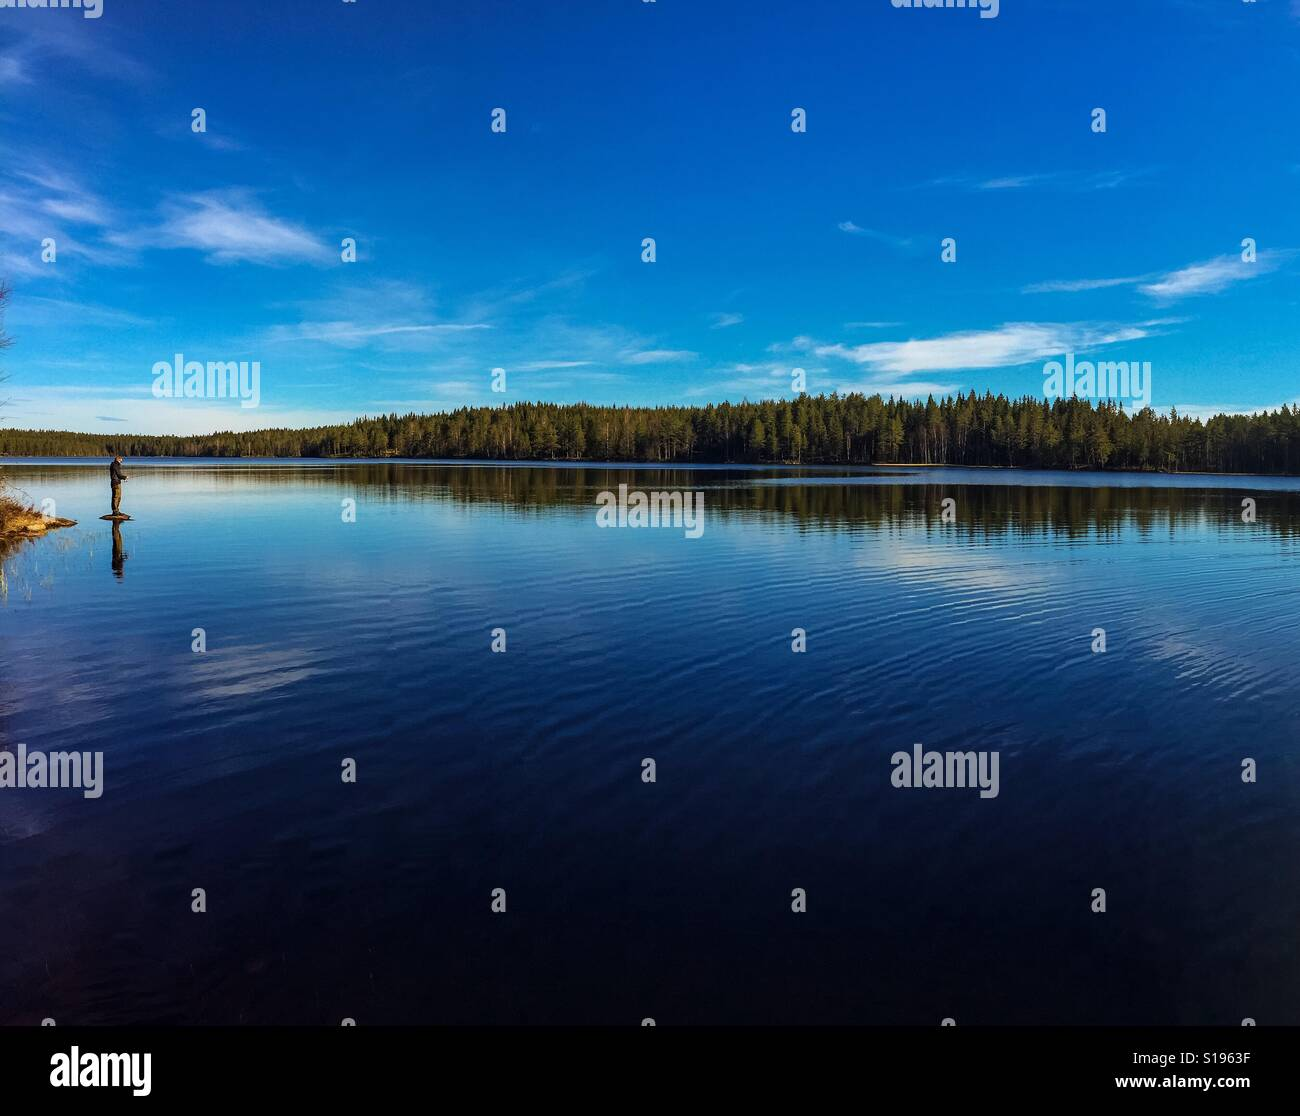 Man standing on small island and fishing in lake. Stock Photo